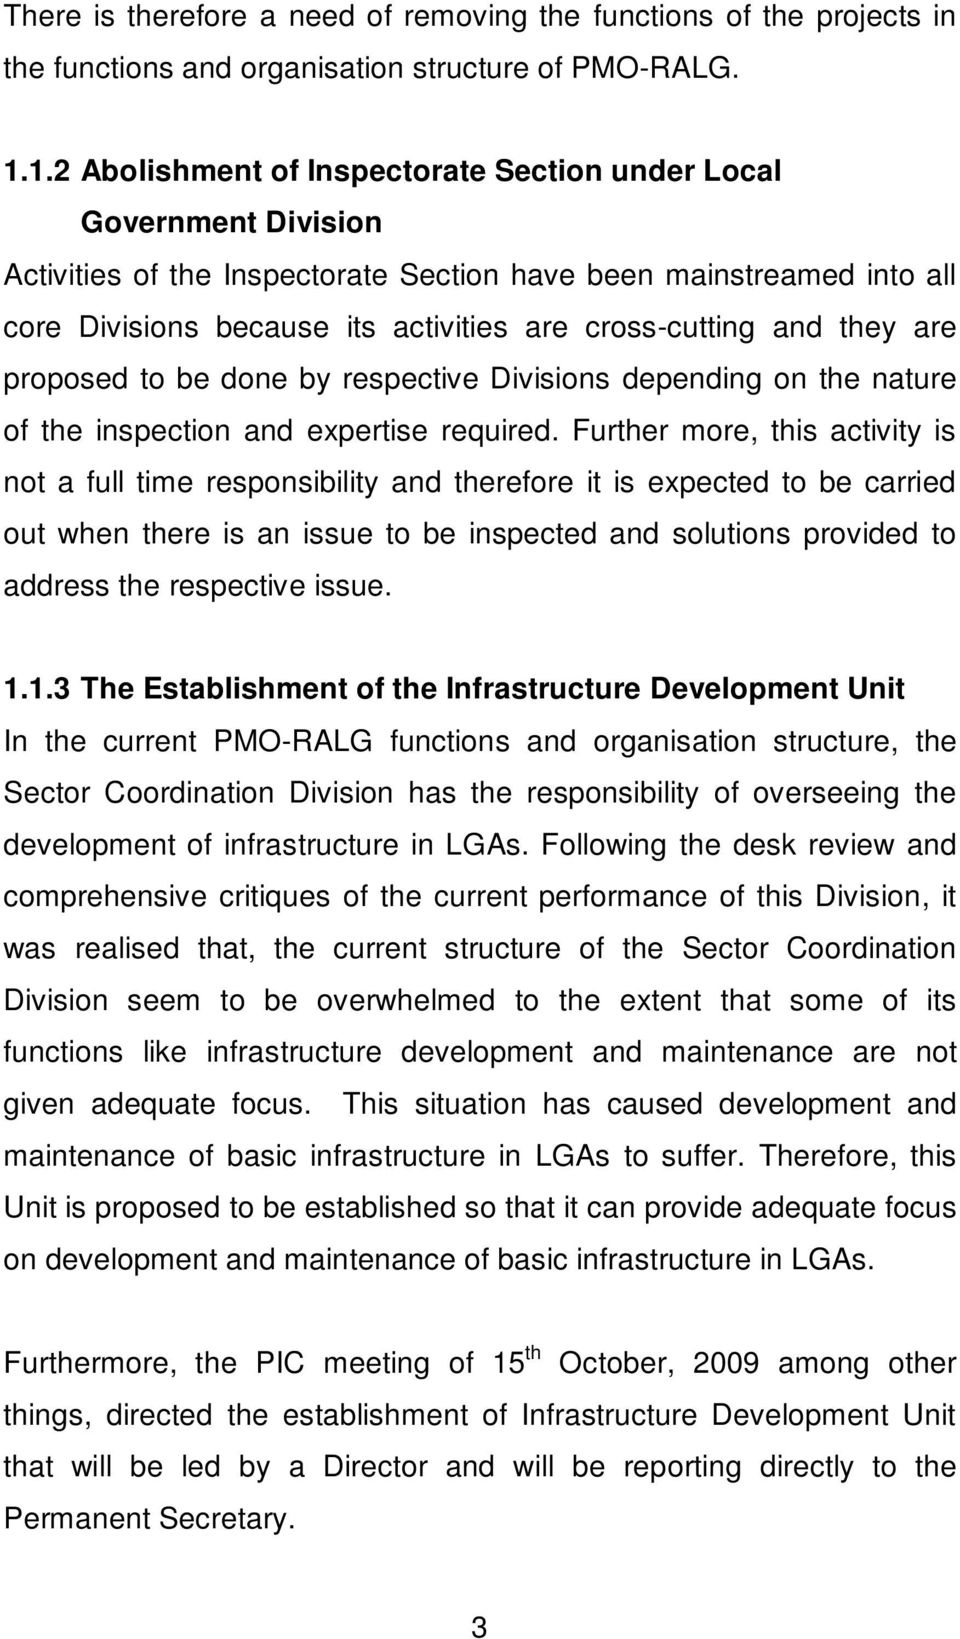 and they are proposed to be done by respective Divisions depending on the nature of the inspection and expertise required.